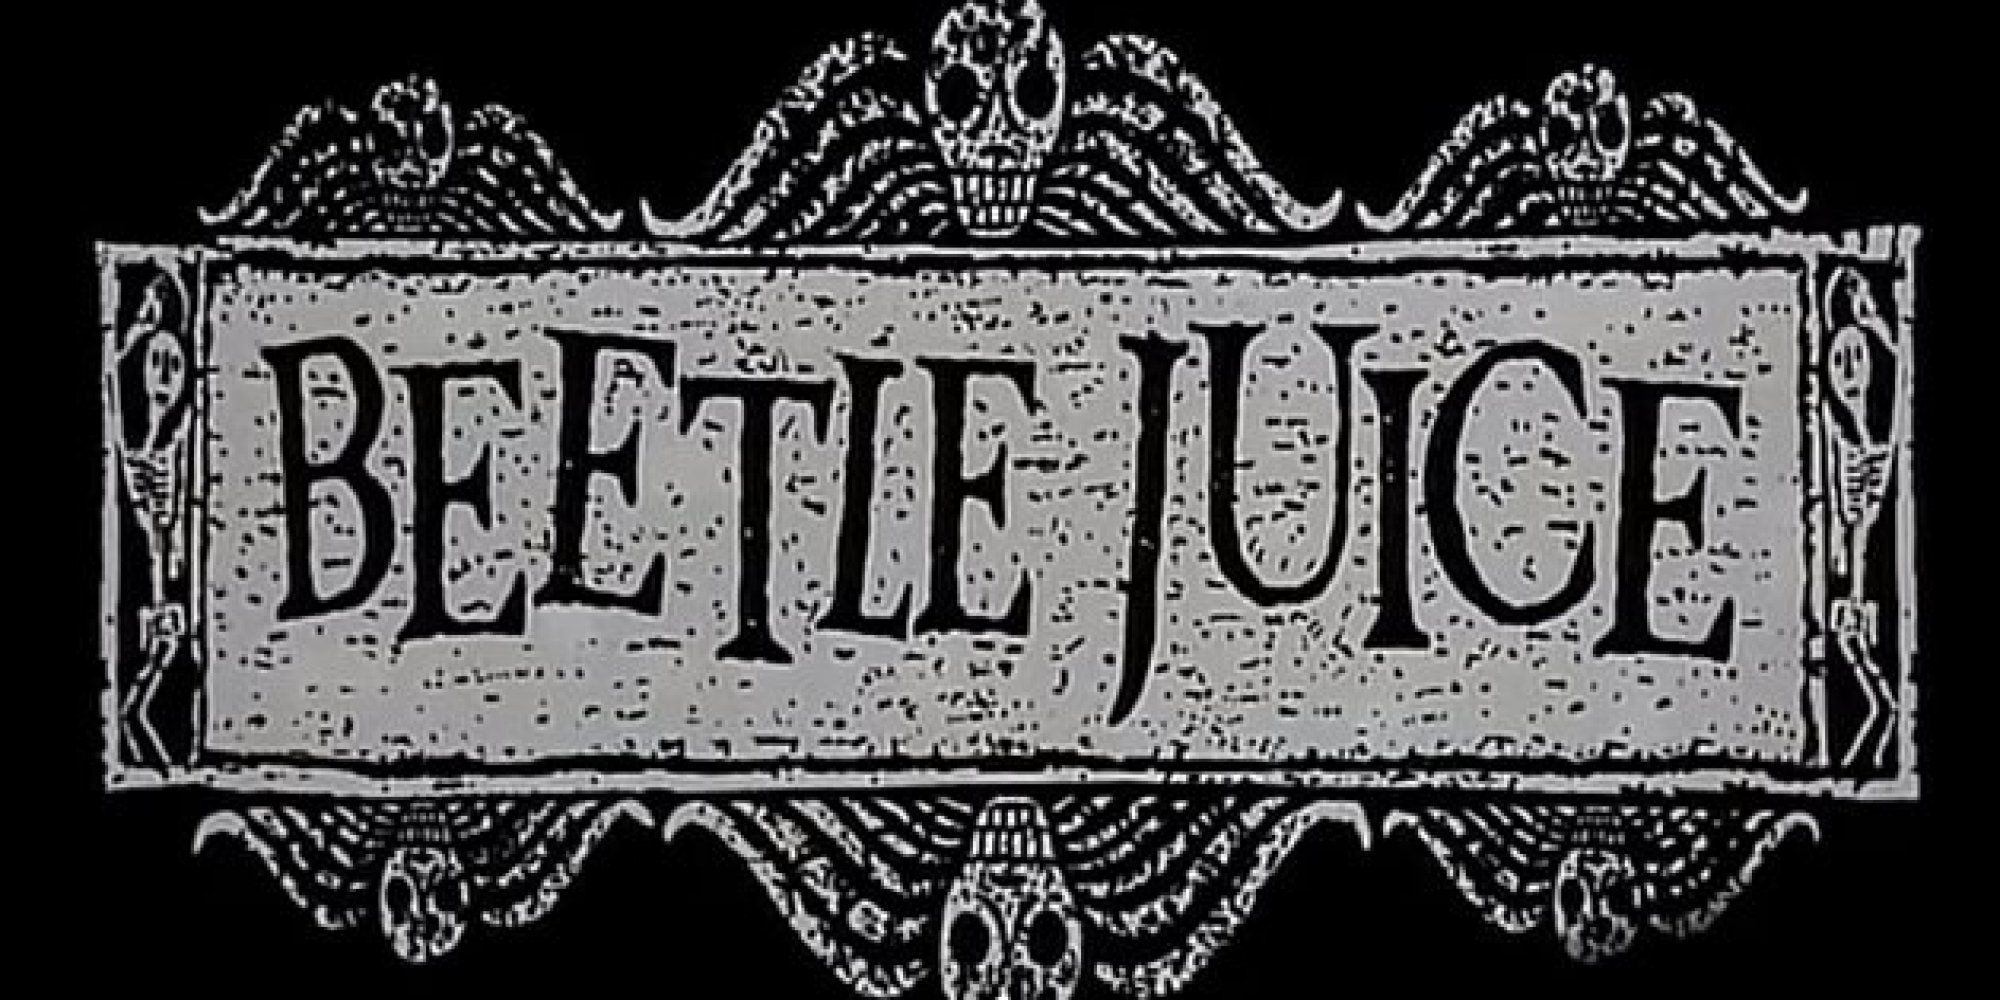 o-BEETLEJUICE-facebook